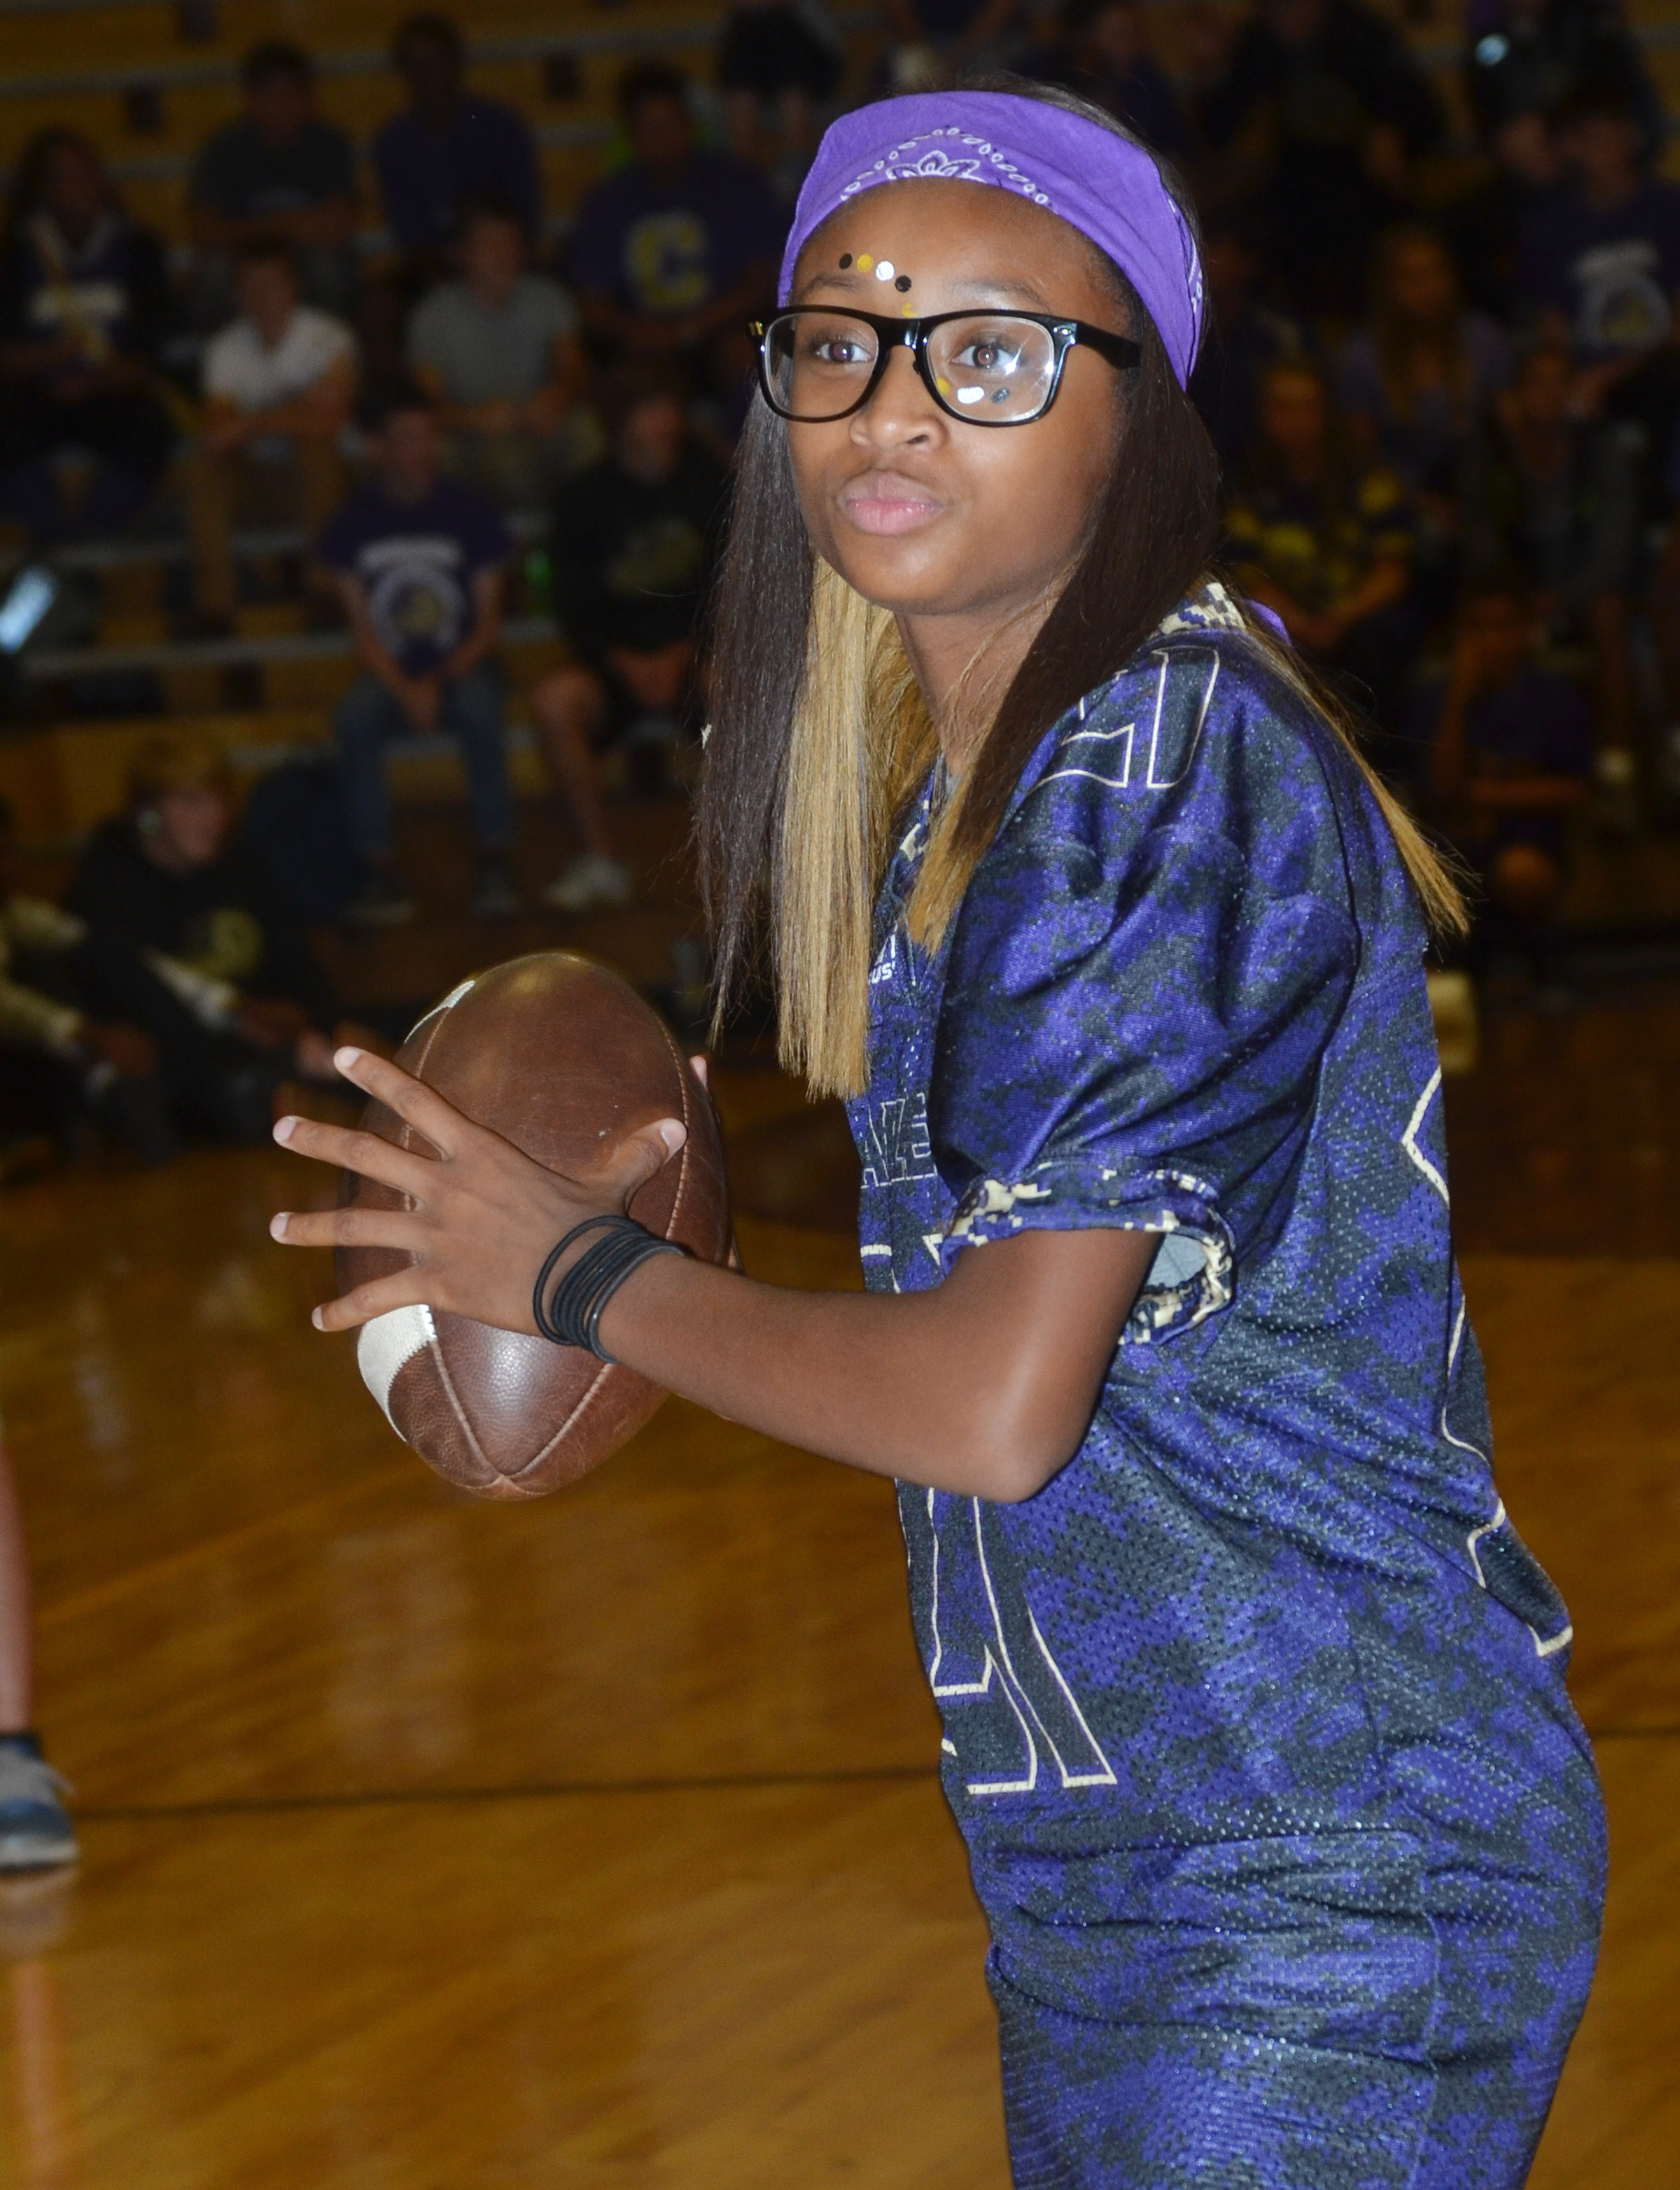 CMS eighth-grader Bri Gowdy throws a football in a spirit game.